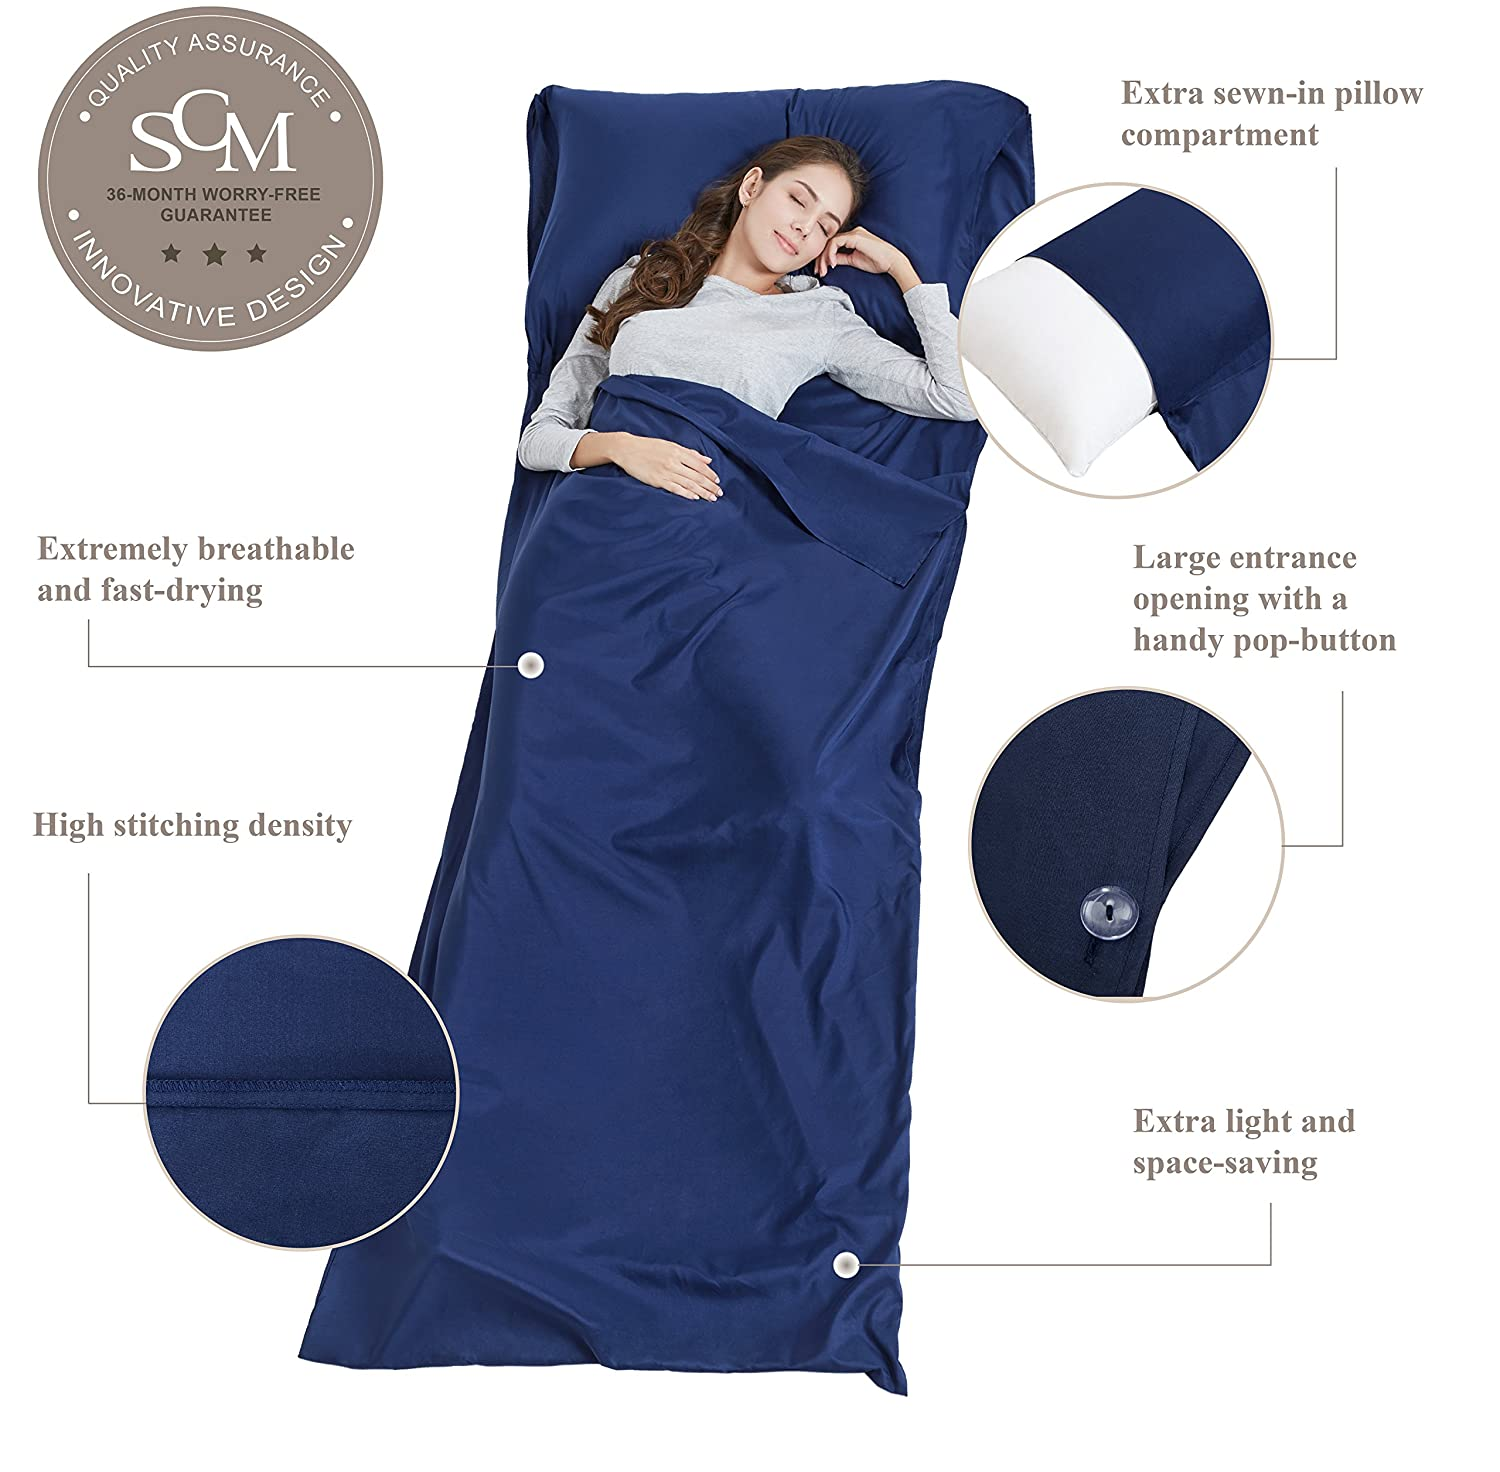 90220cm, Navy SCM Sleeping Bag Liner and Camping Sheet Lightweight with Button for Hotel Single